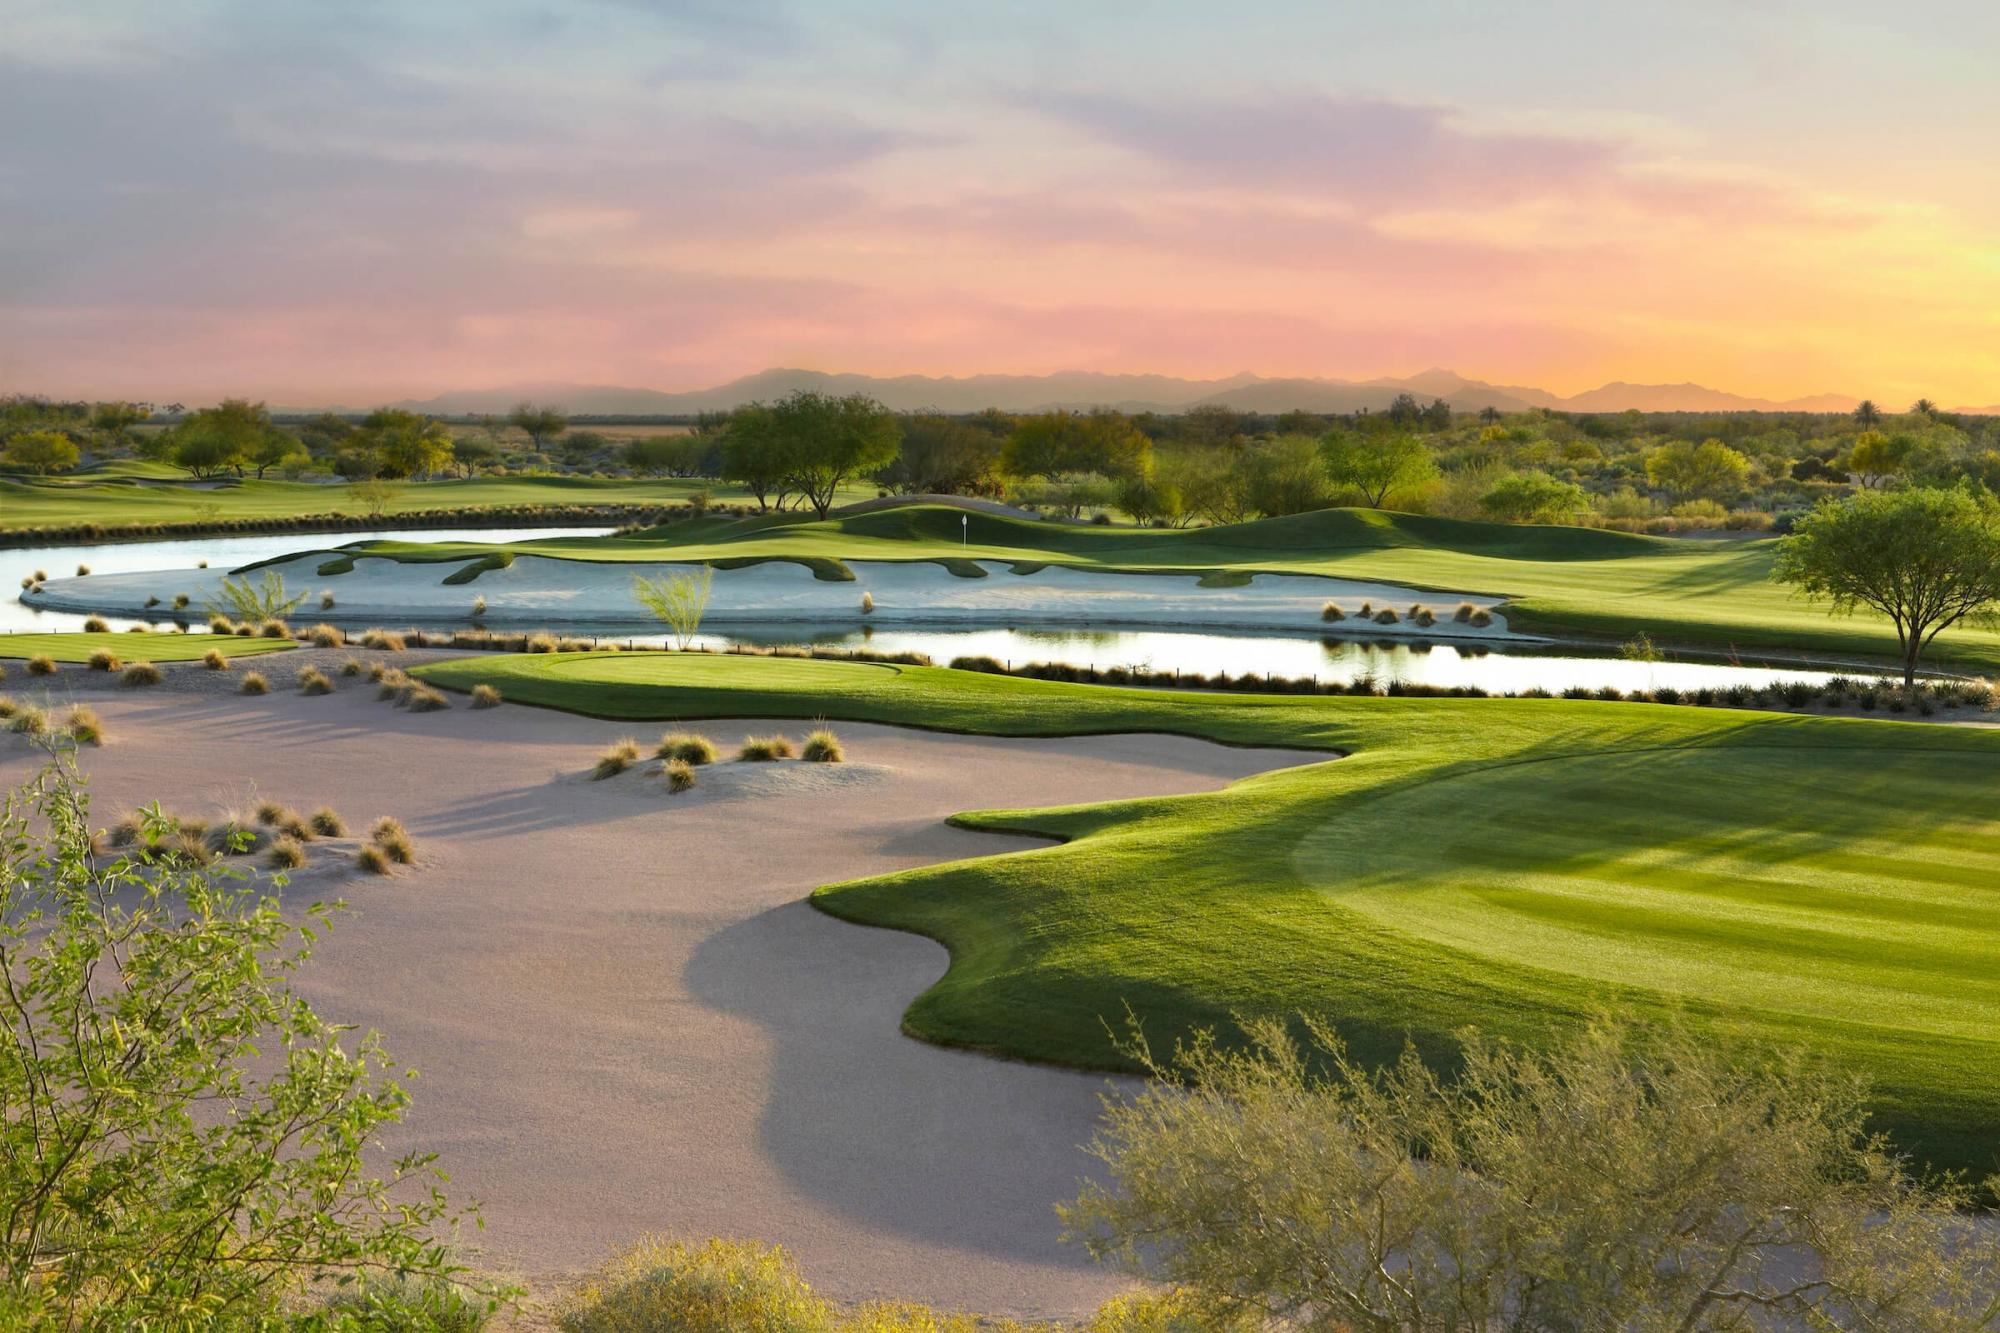 All The Longbow Golf Club's impressive golf course situated in stunning Arizona.